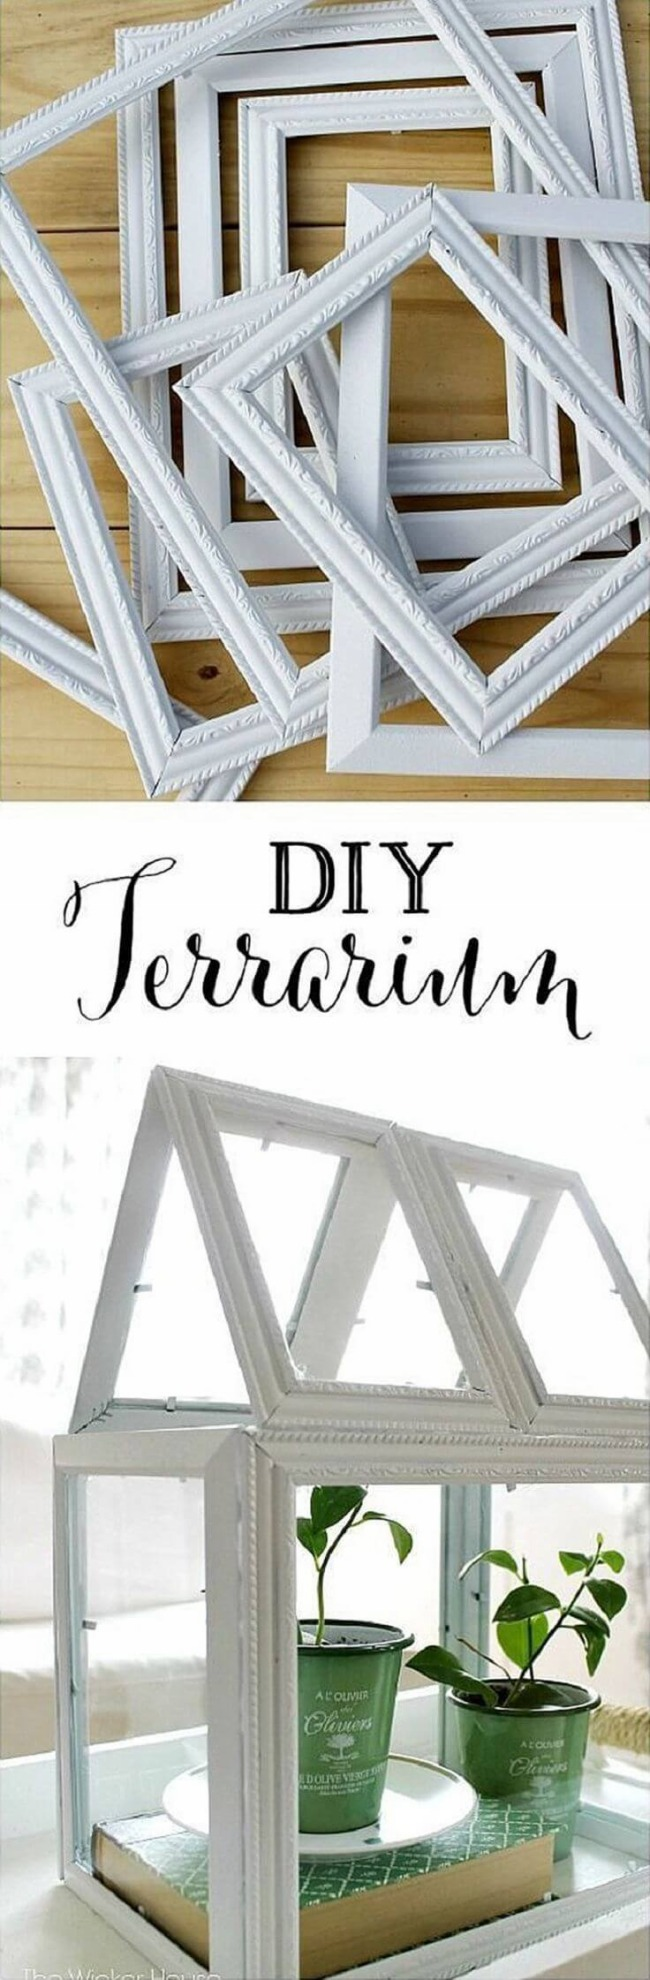 26 Elegant White Terrarium made of Old Frames and Glue with a Coverless Open Pattern